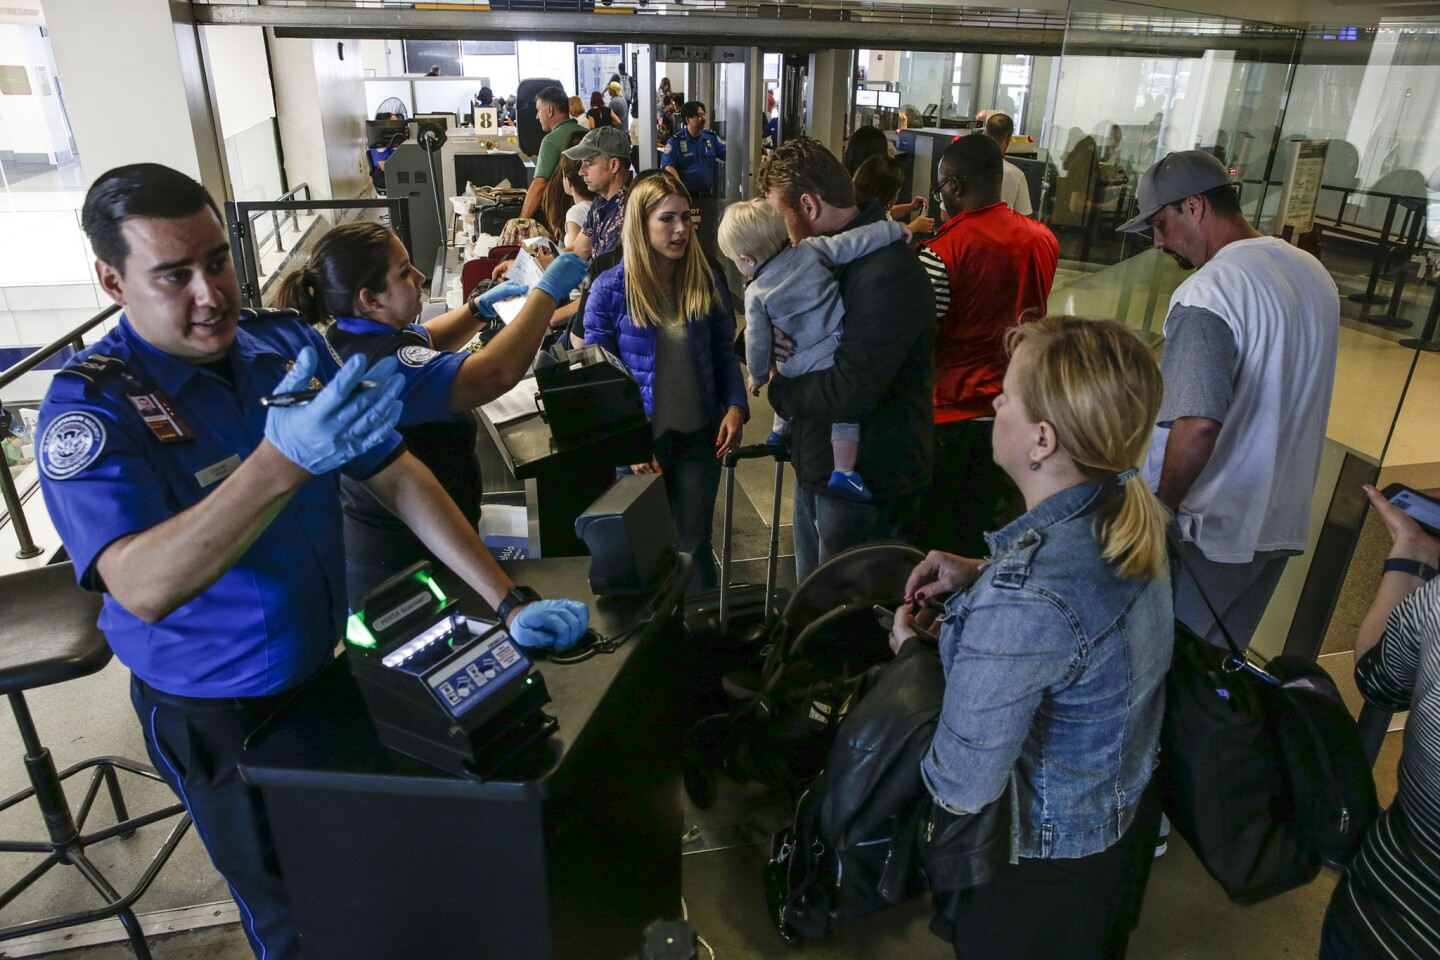 Memorial Day weekend travelers line up at a TSA checkpoint at the United Airlines Terminal at LAX.